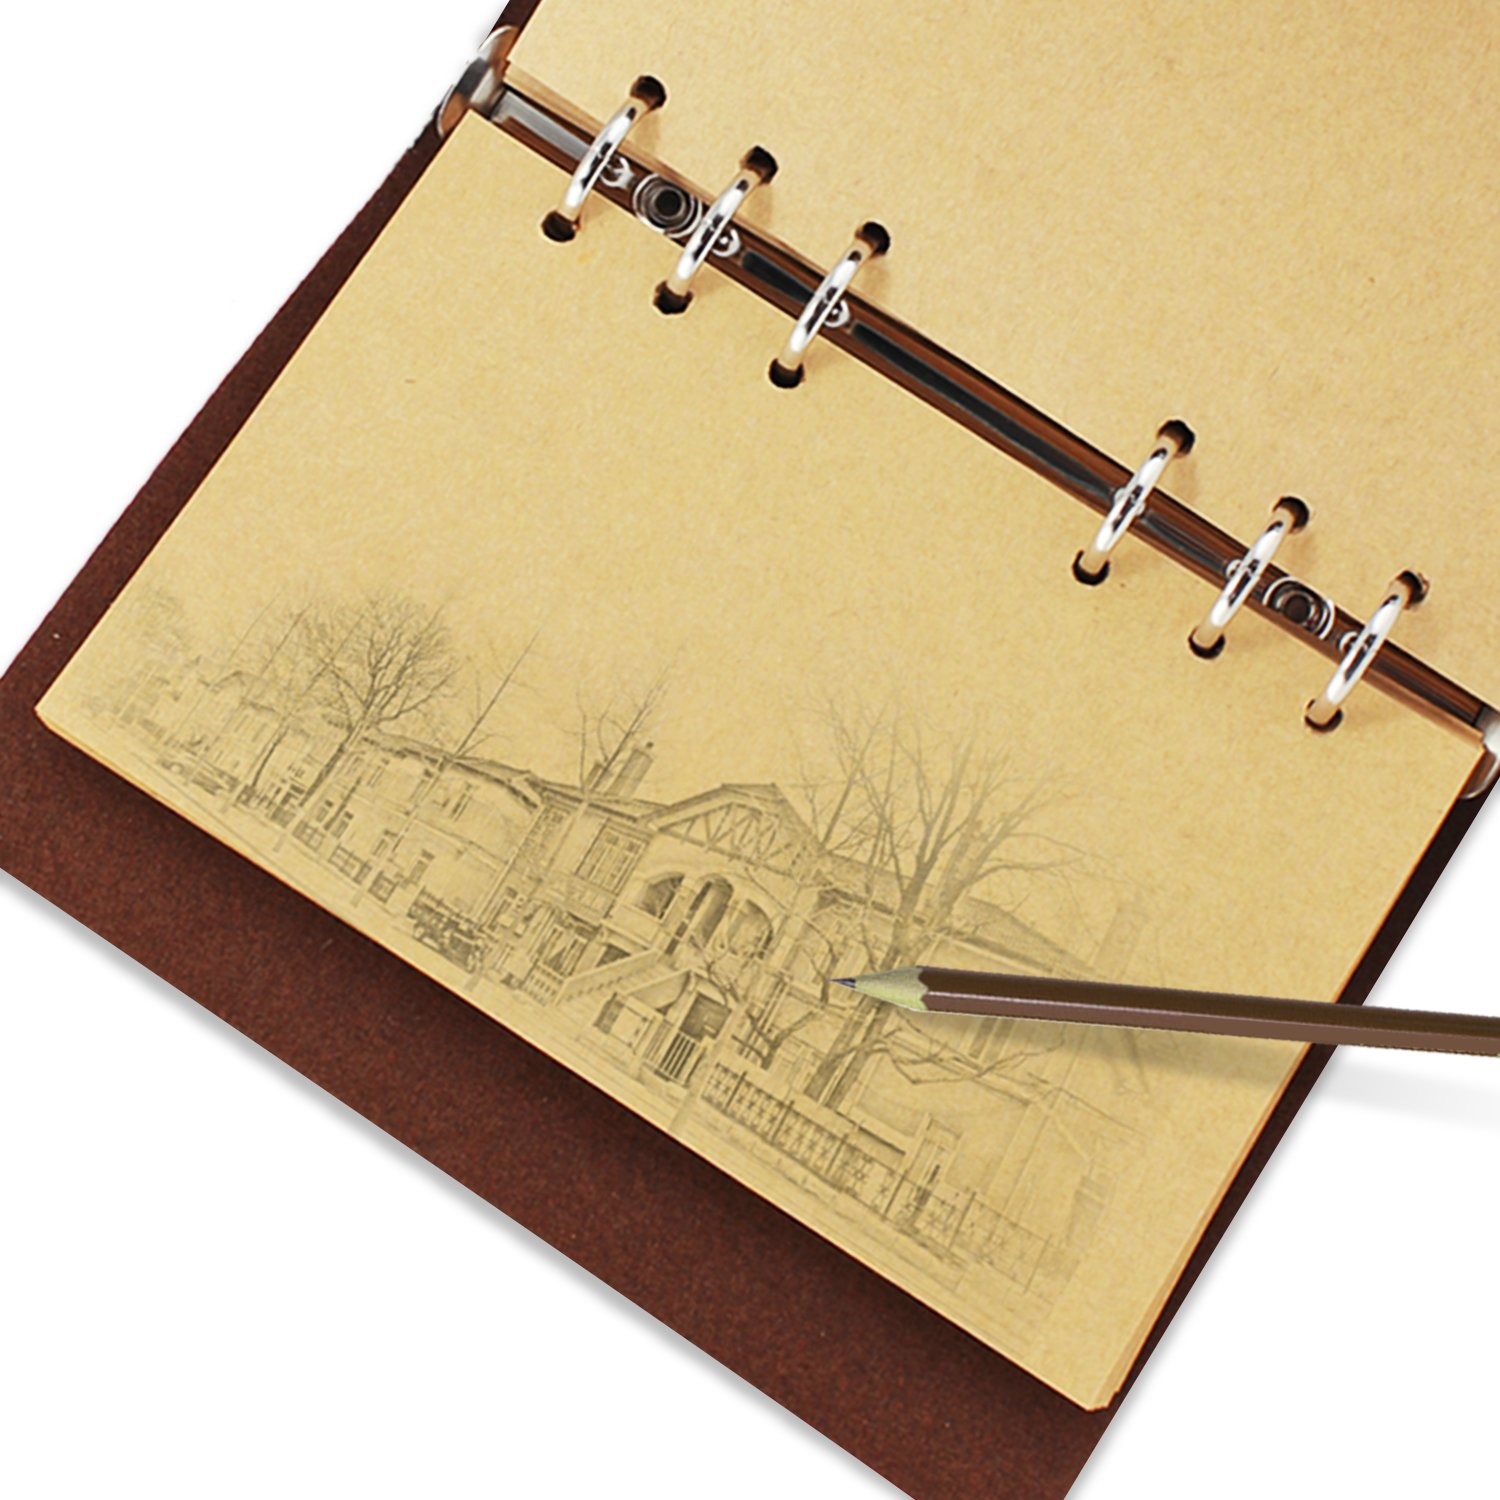 KEESIN Vintage PU Leather Cover Journal Notebook Loose Leaf Blank Notebook Travel Diary Gift Brown